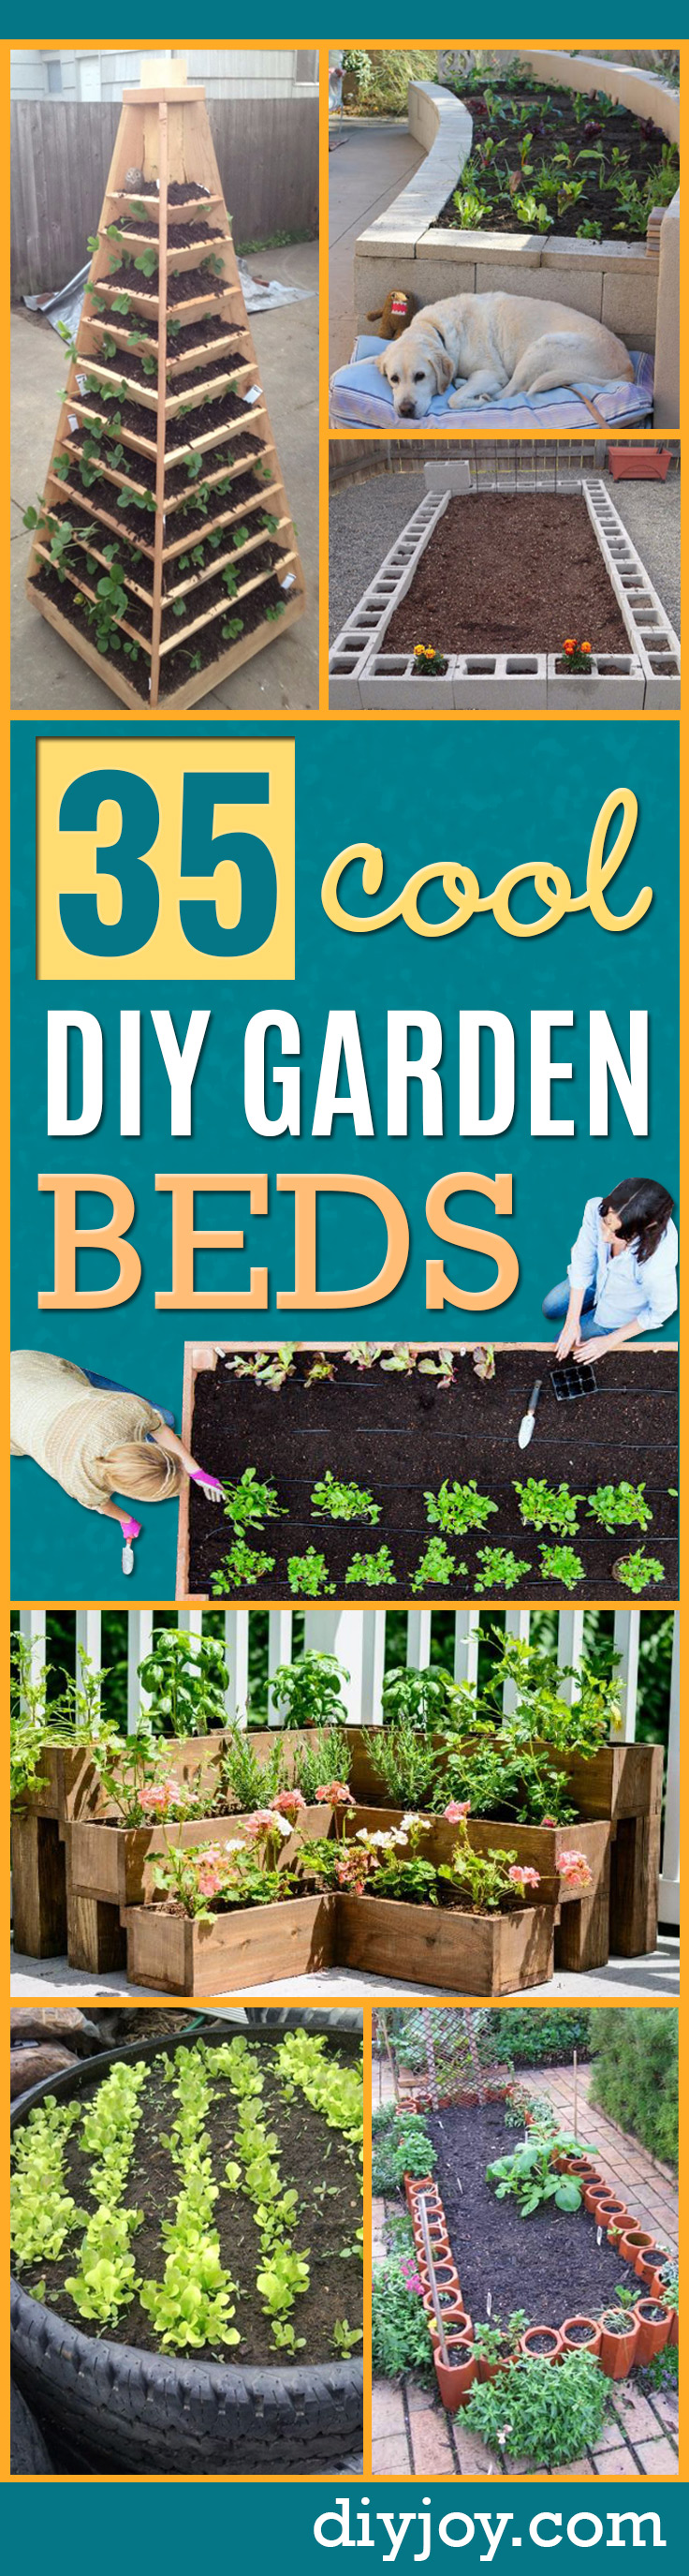 DIY Garden Beds - Easy Gardening Ideas for Raised Beds and Planter Boxes - Free Plans, Tutorials and Step by Step Tutorials for Building and Landscaping Projects - Update Your Backyard and Gardens With These Cheap Do It Yourself Ideas http://diyjoy.com/diy-garden-beds